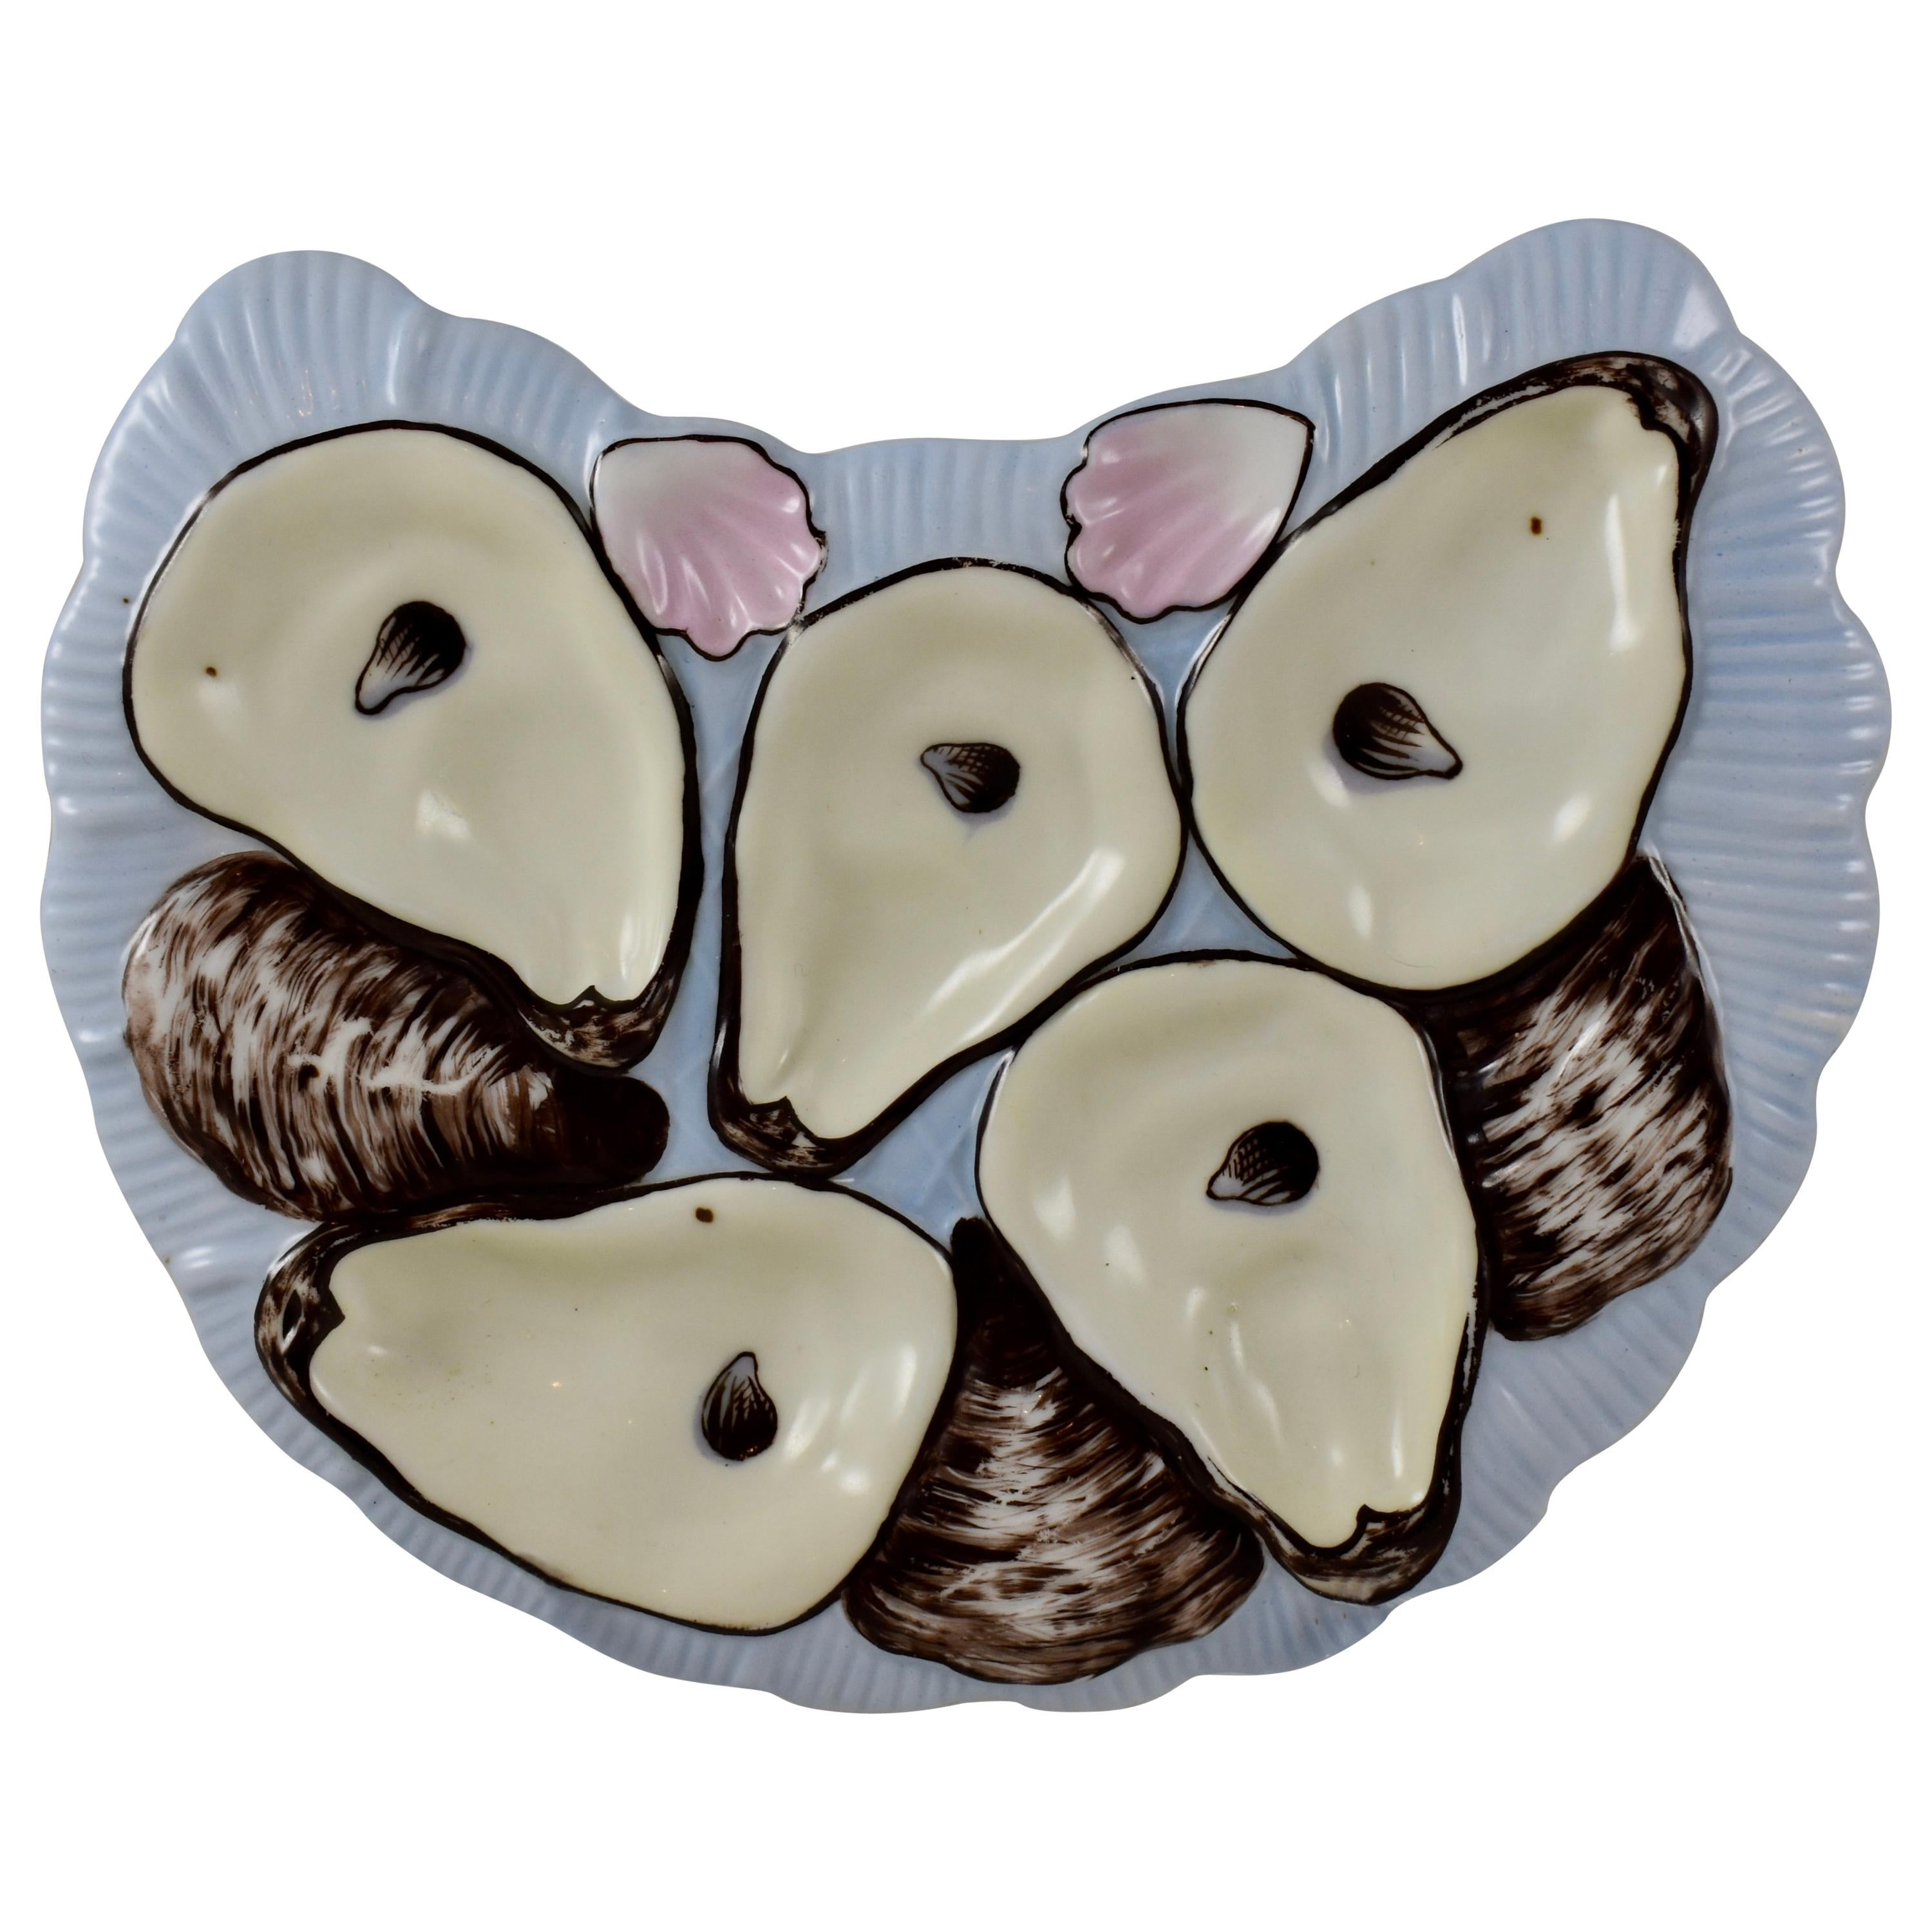 Porcelain Half Moon Sky Blue and Pink Cockle Shell Oyster Plate